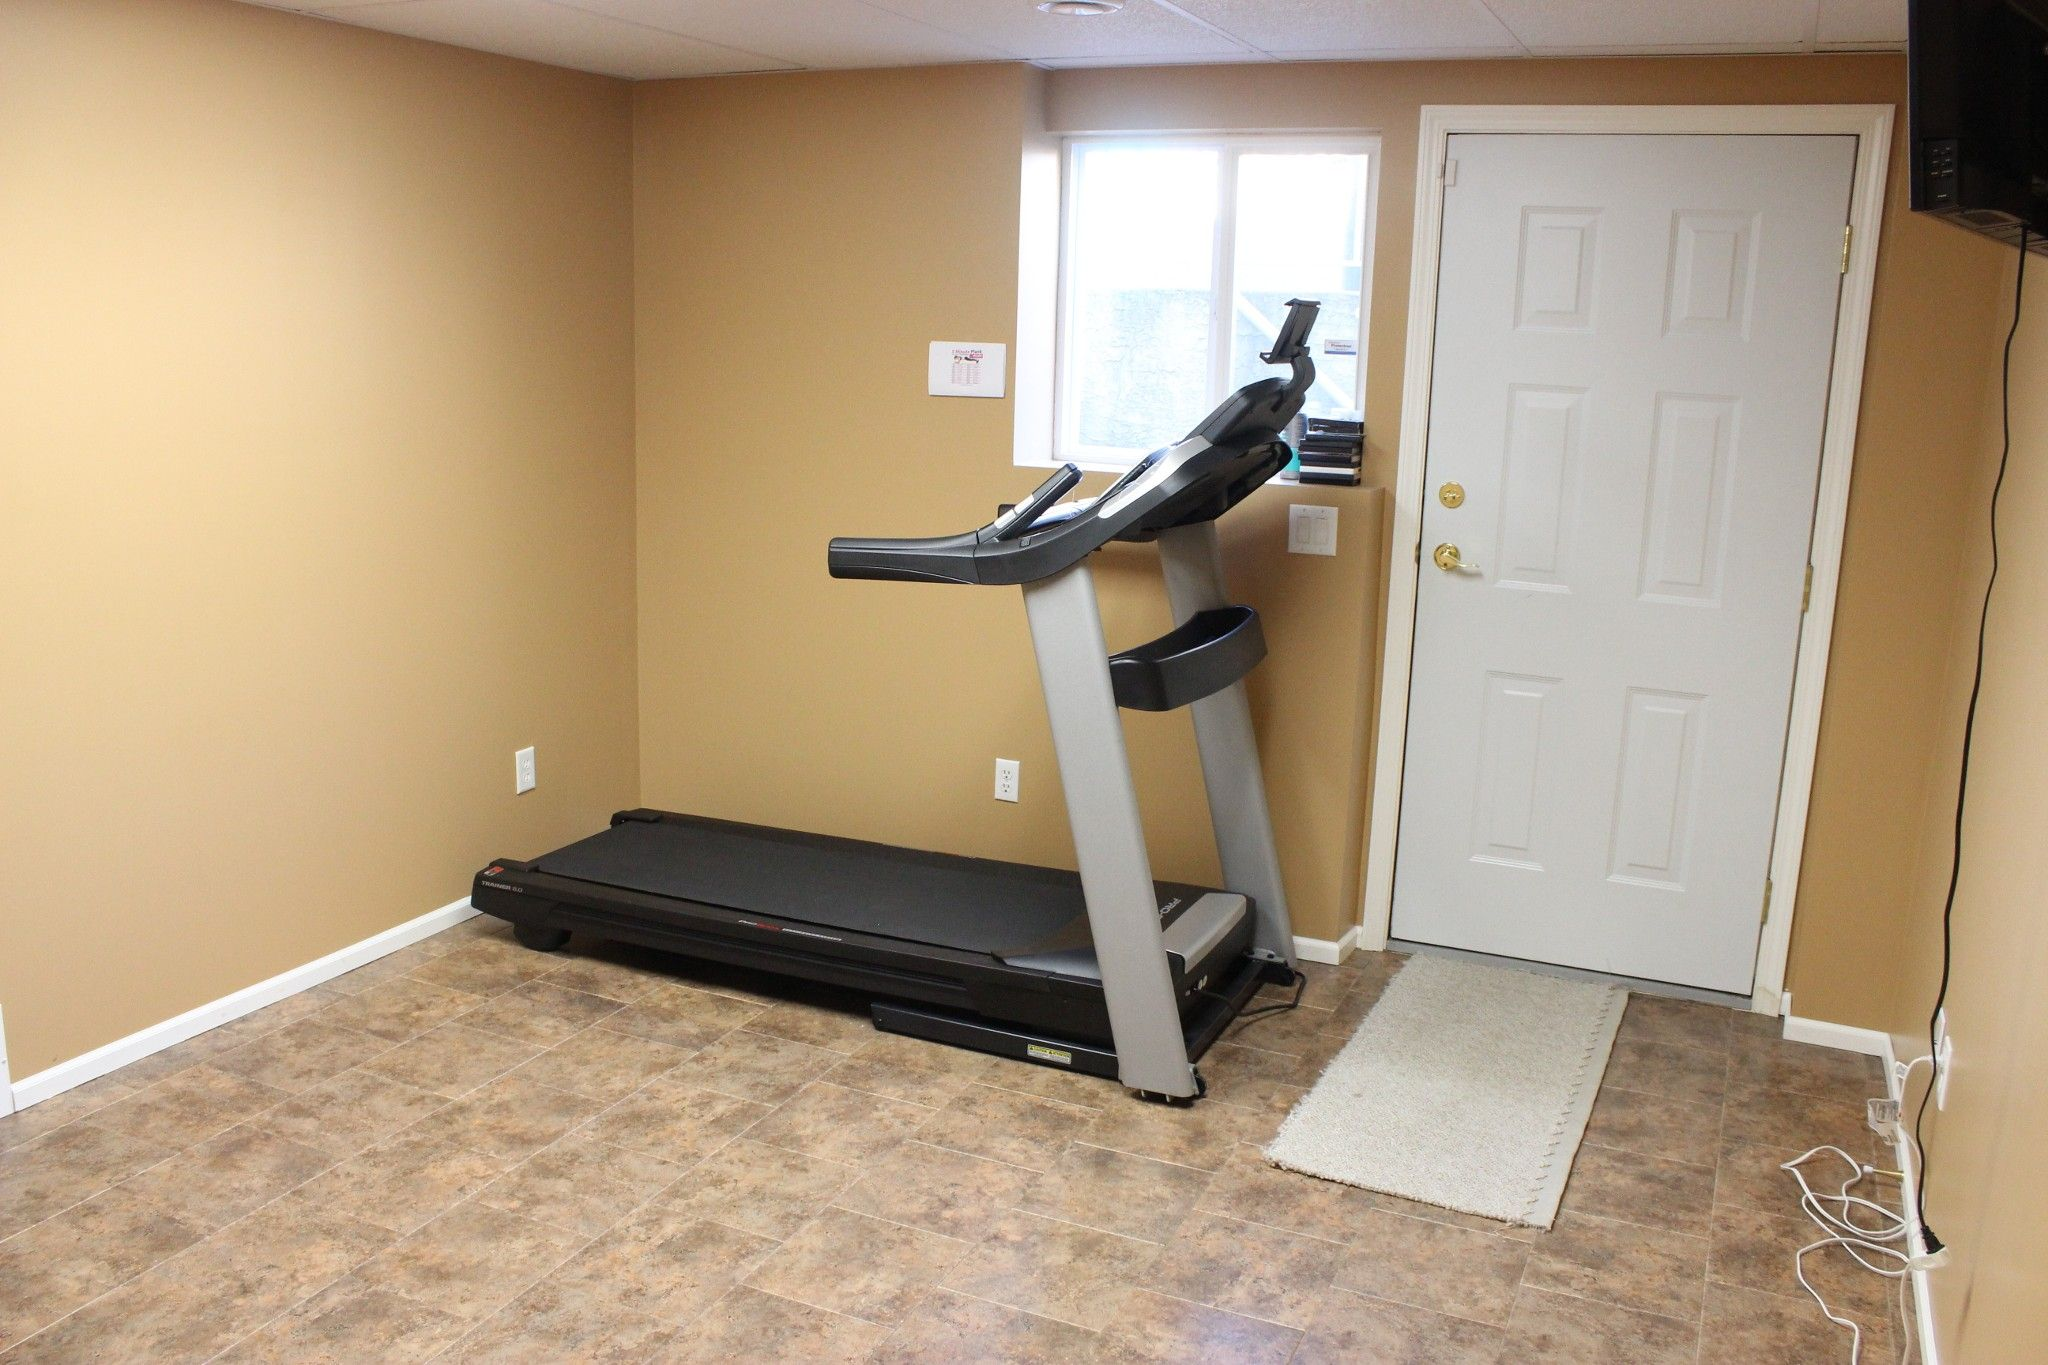 Photo 19: Photos: 3696 Navatanee Drive in Kamloops: South Thompson Valley House for sale : MLS®# 148660